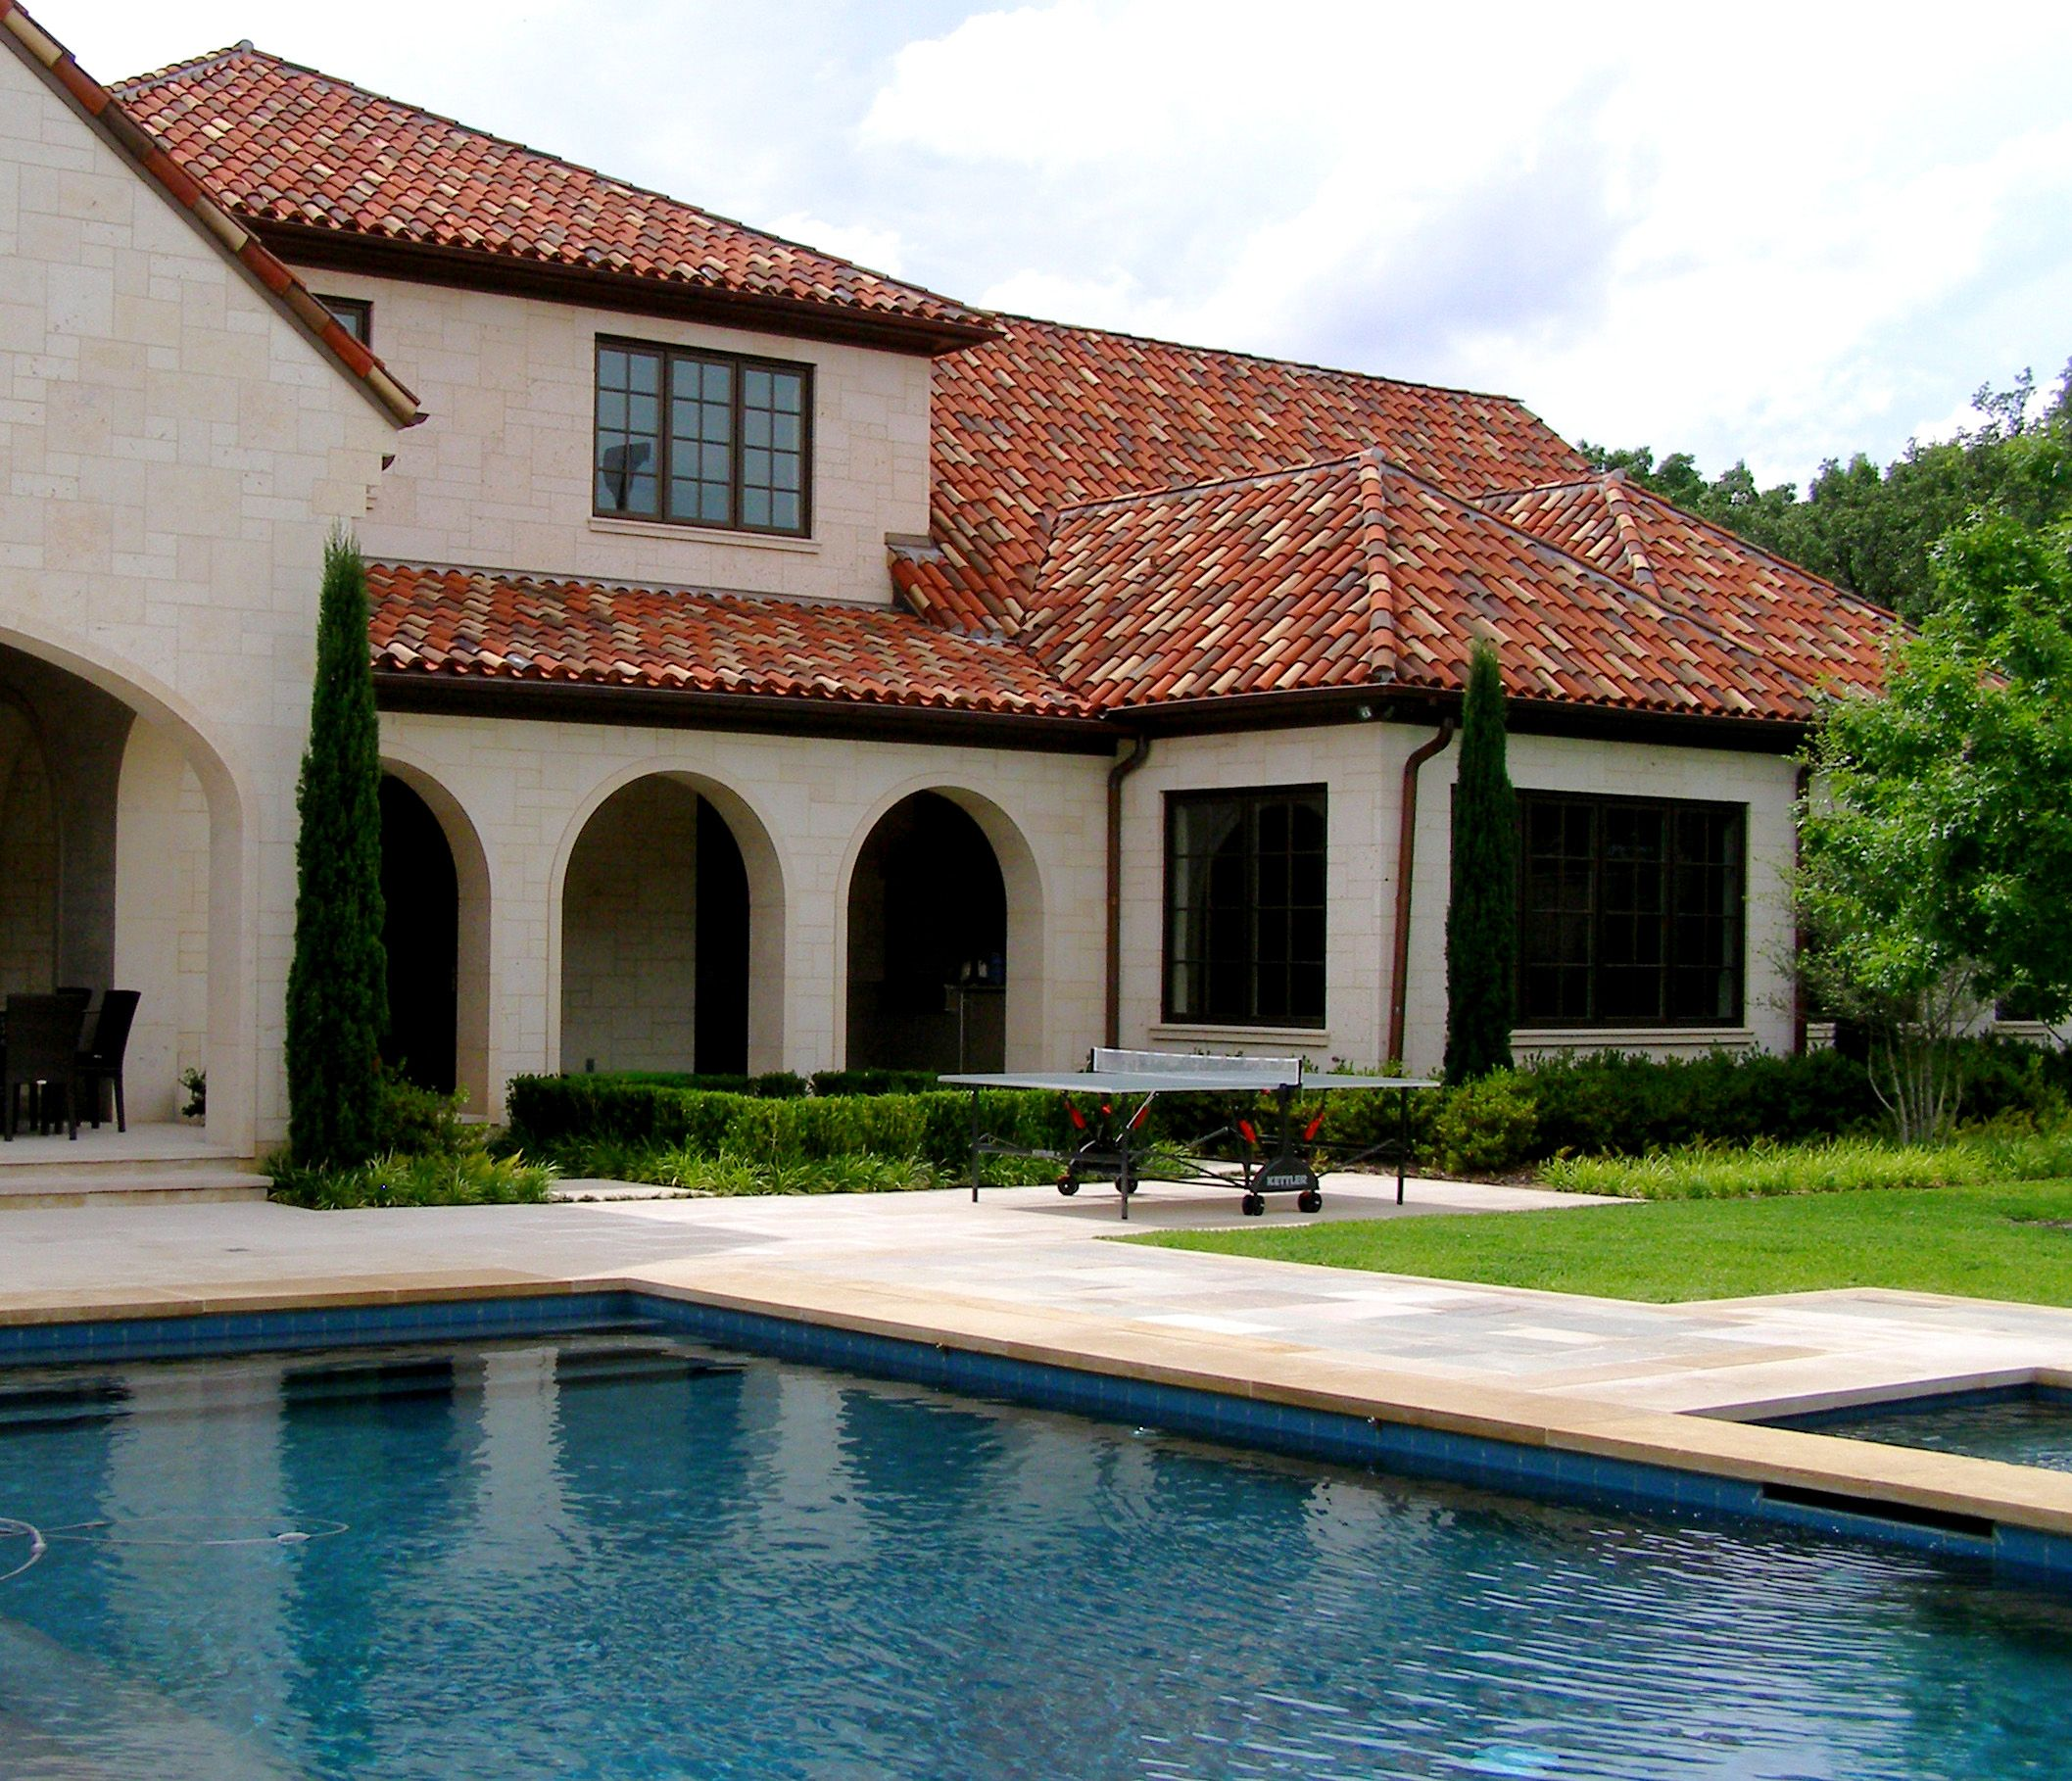 Mediterranean Home Colors Exterior: Backyard Exterior Of A Italian Mediterranean Villa In